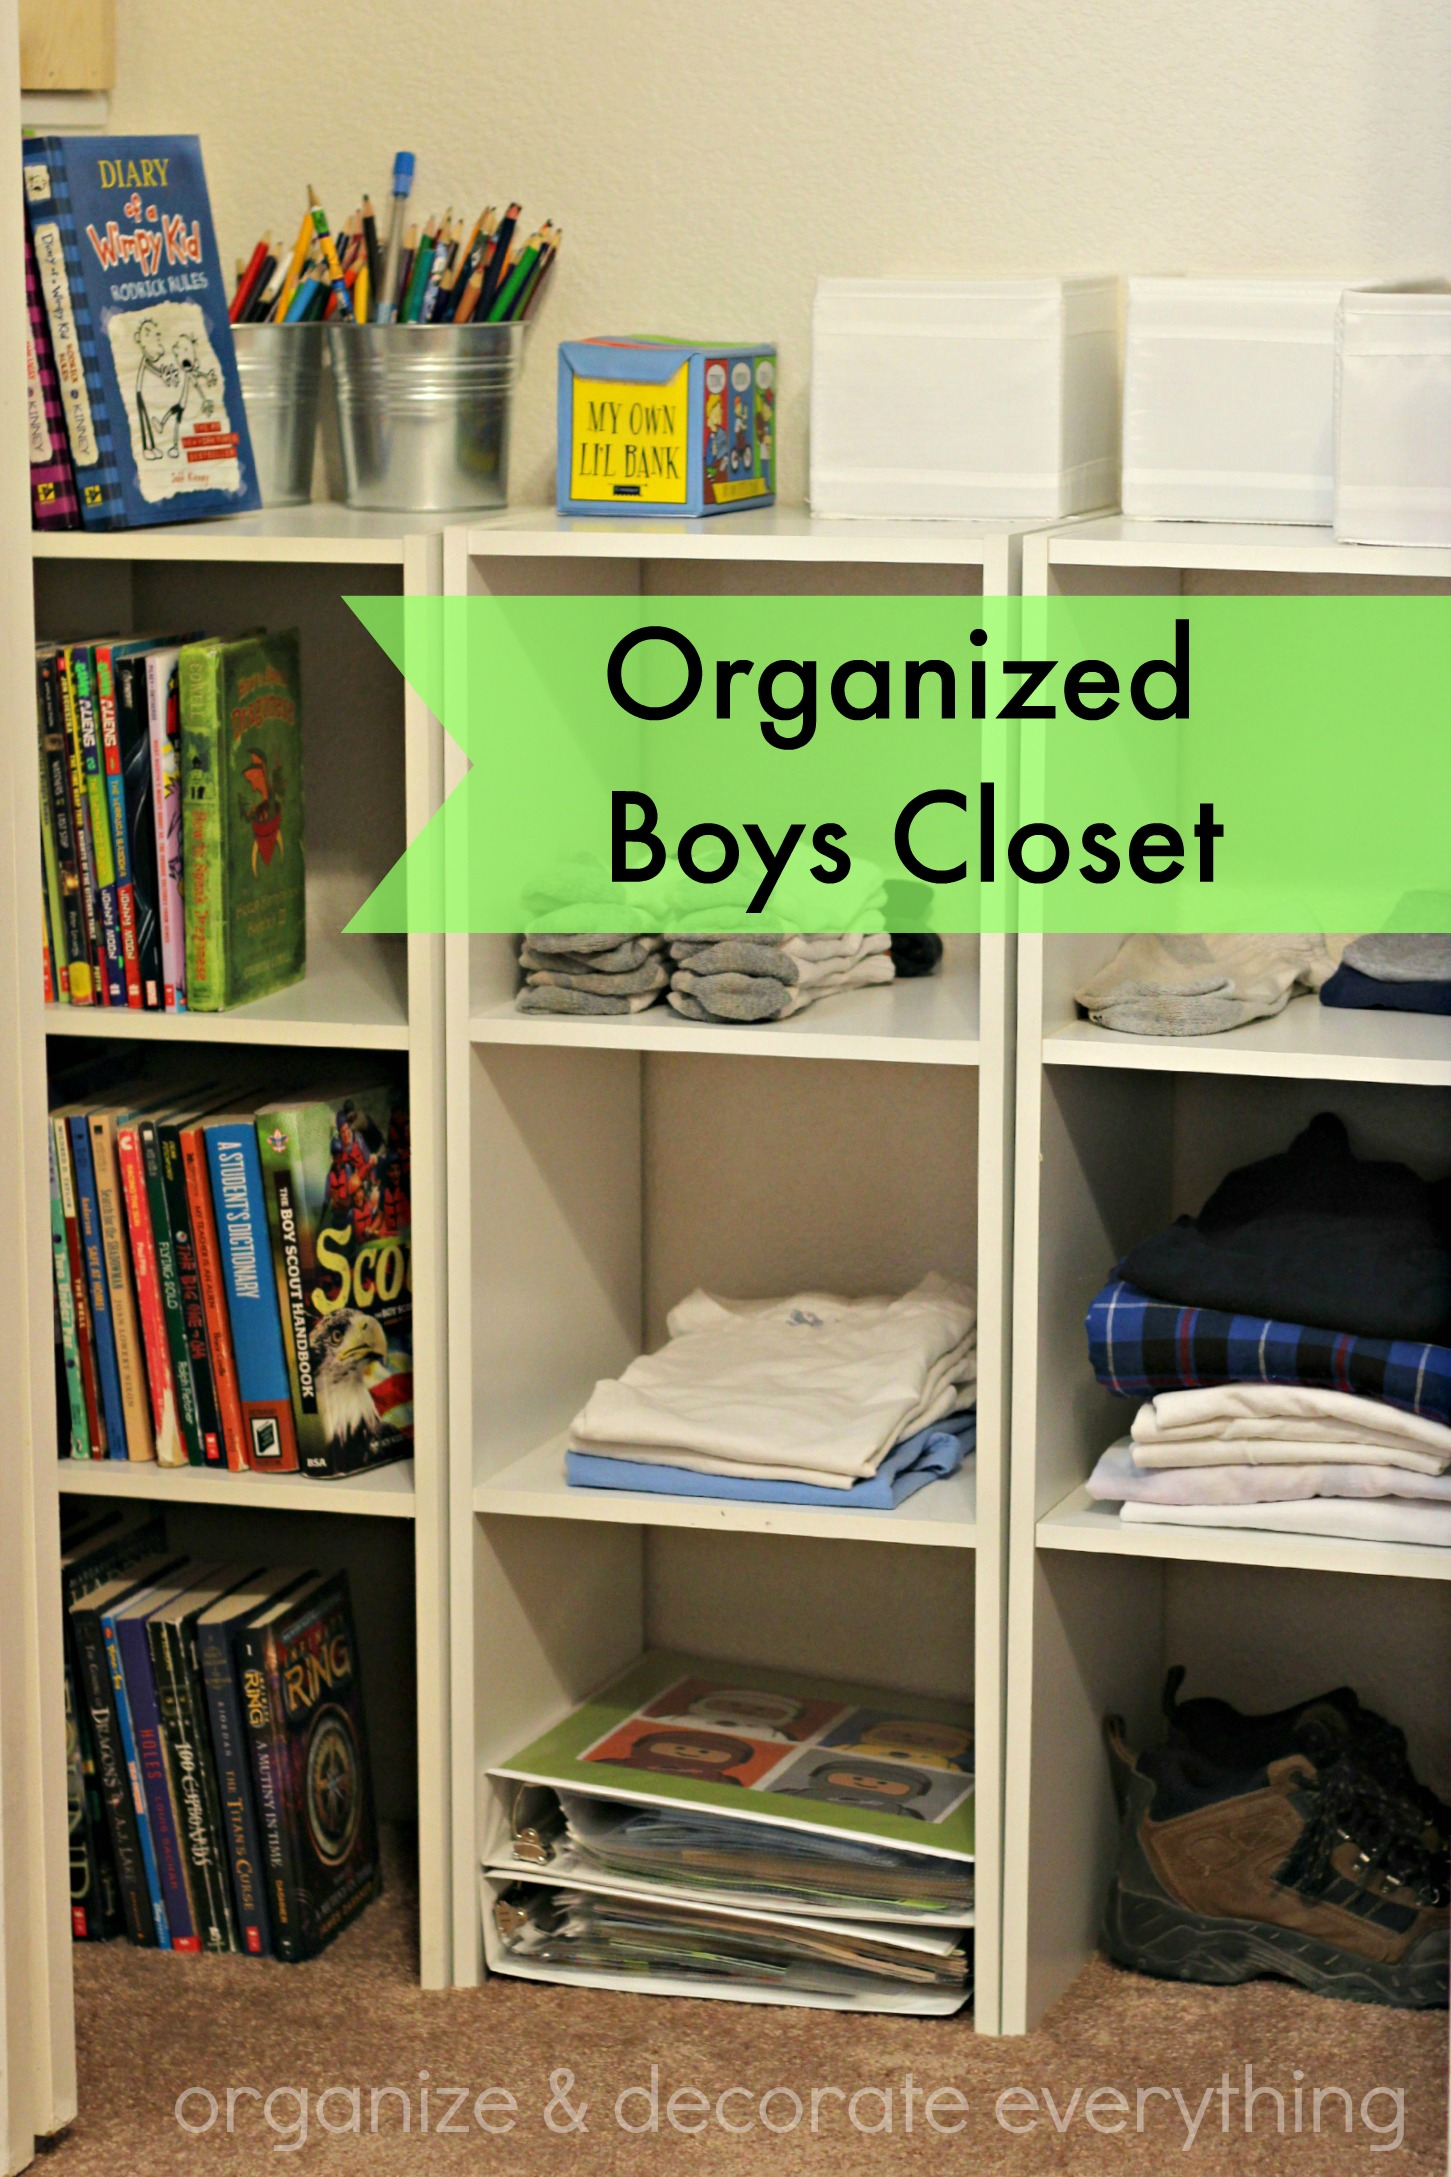 Organized boys closet organize and decorate everything for How to organize your room and closet